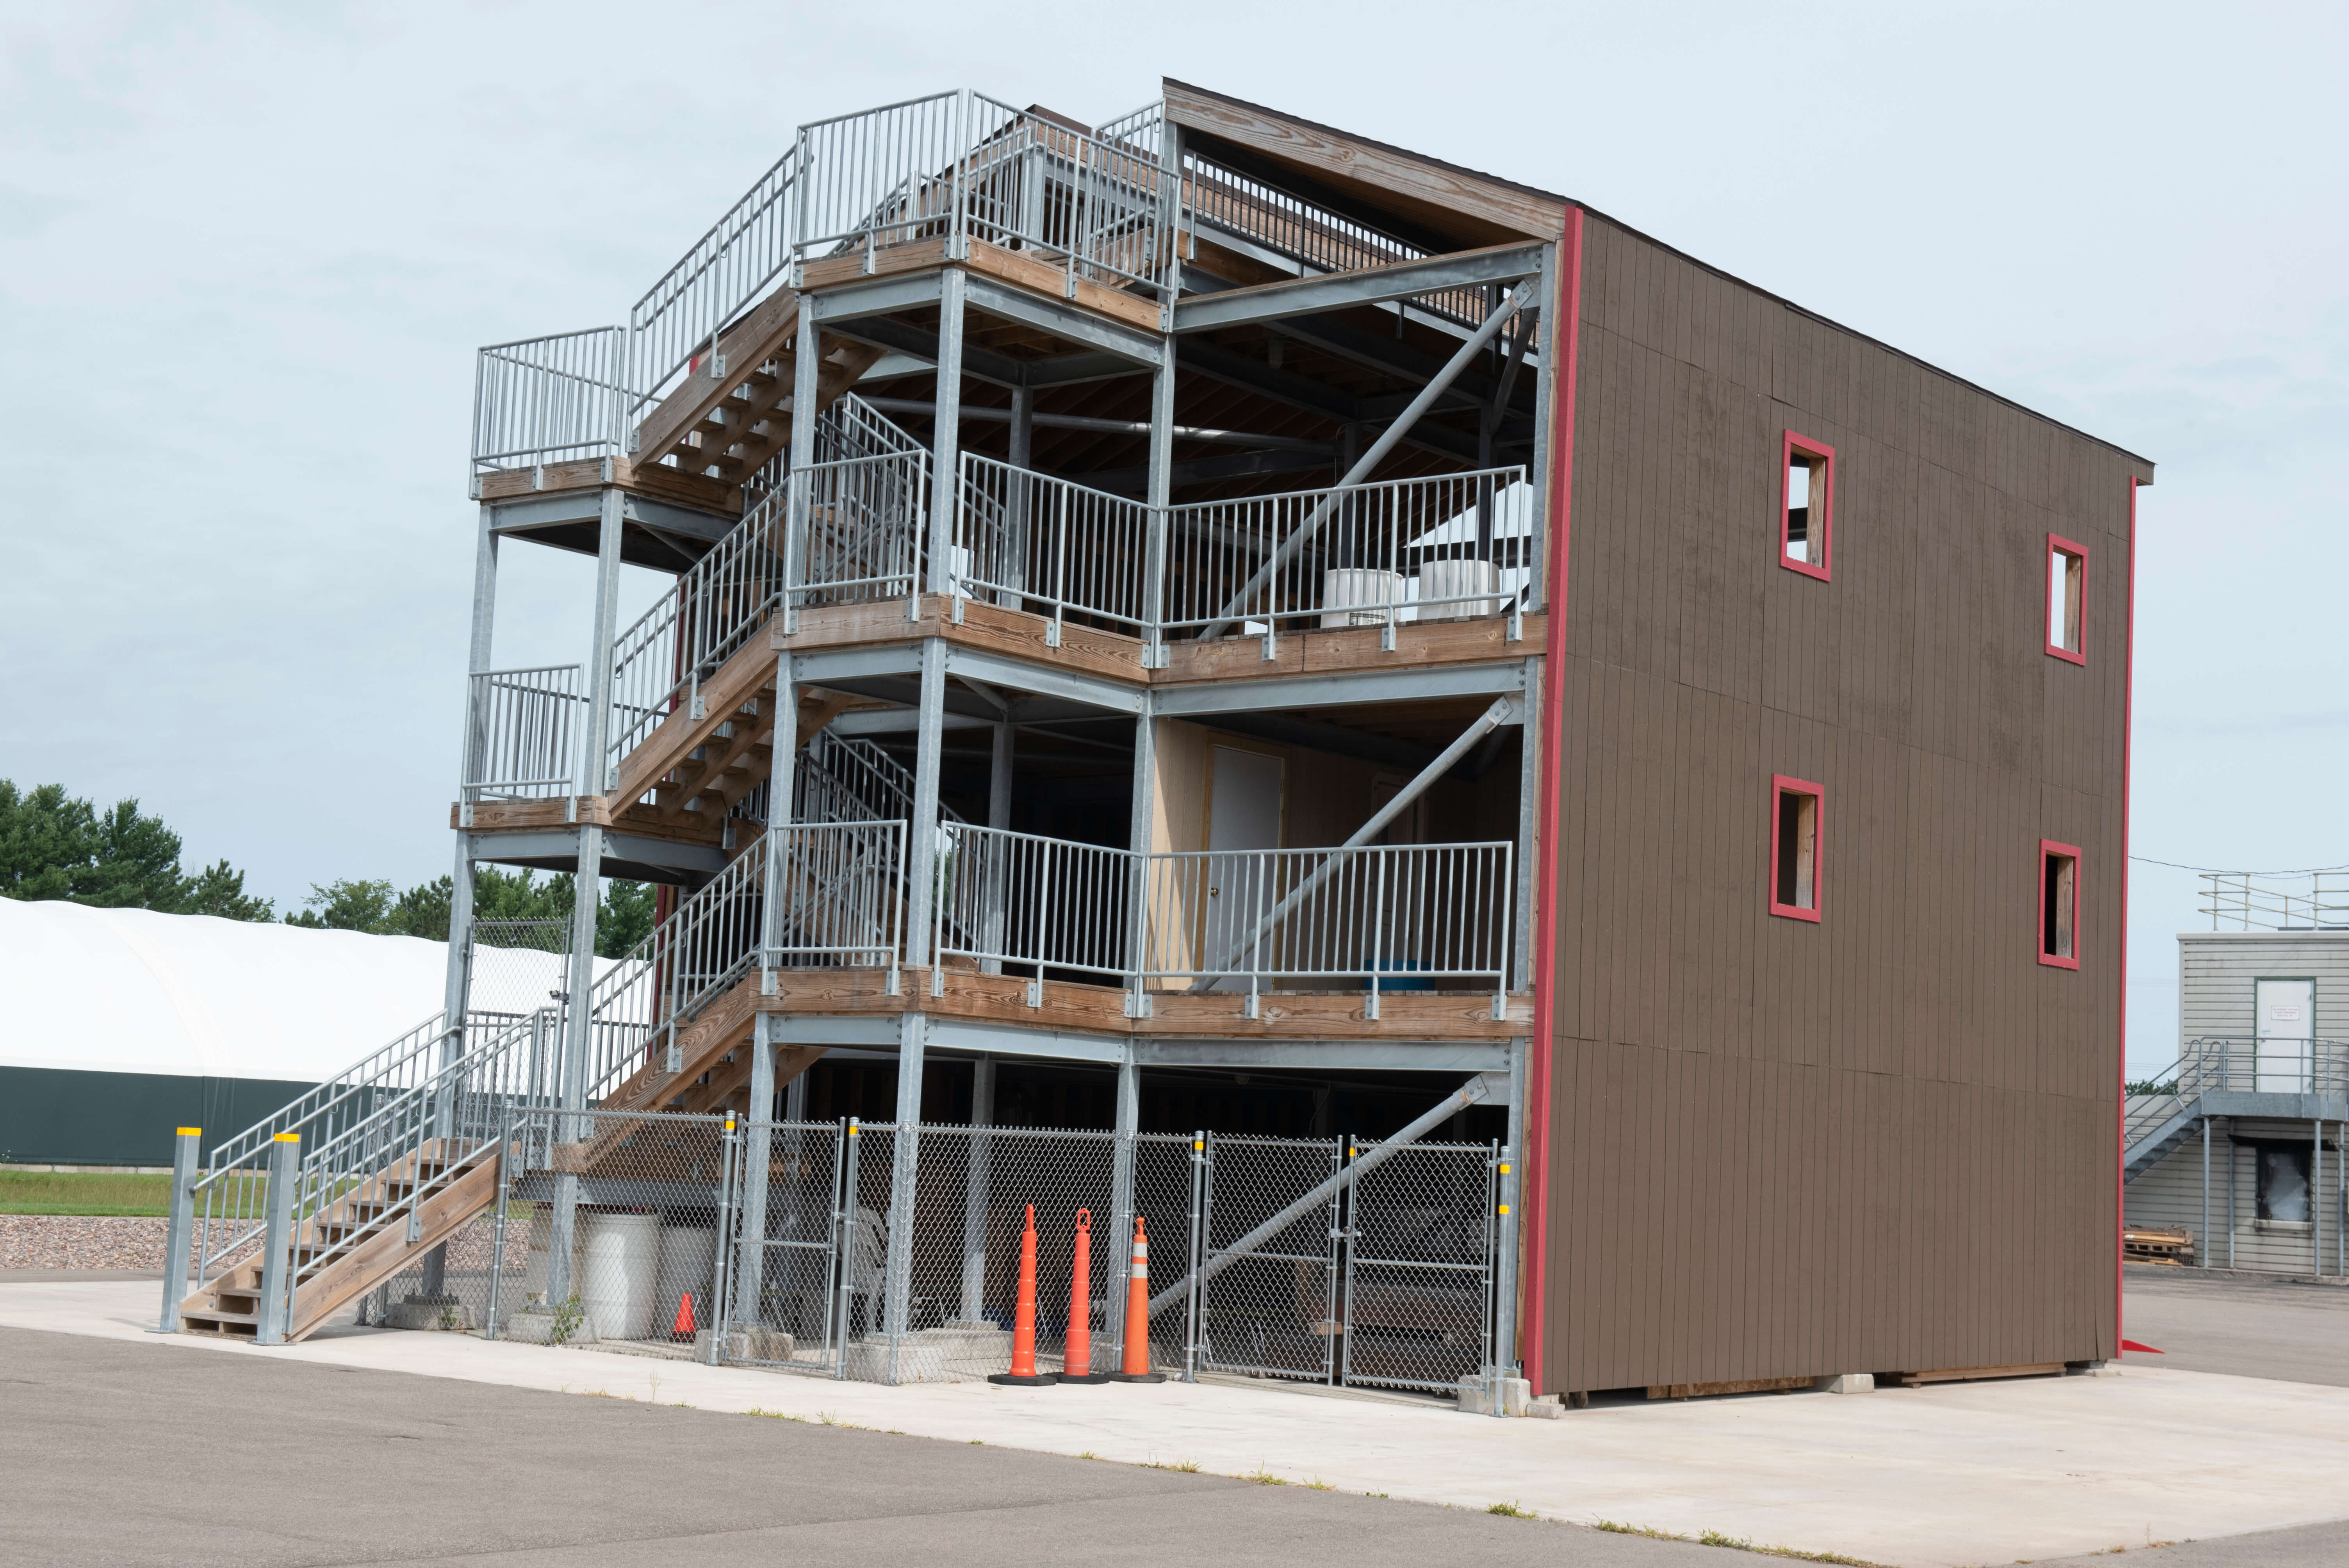 Chippewa Valley Technical College - Emergency Service Education Center